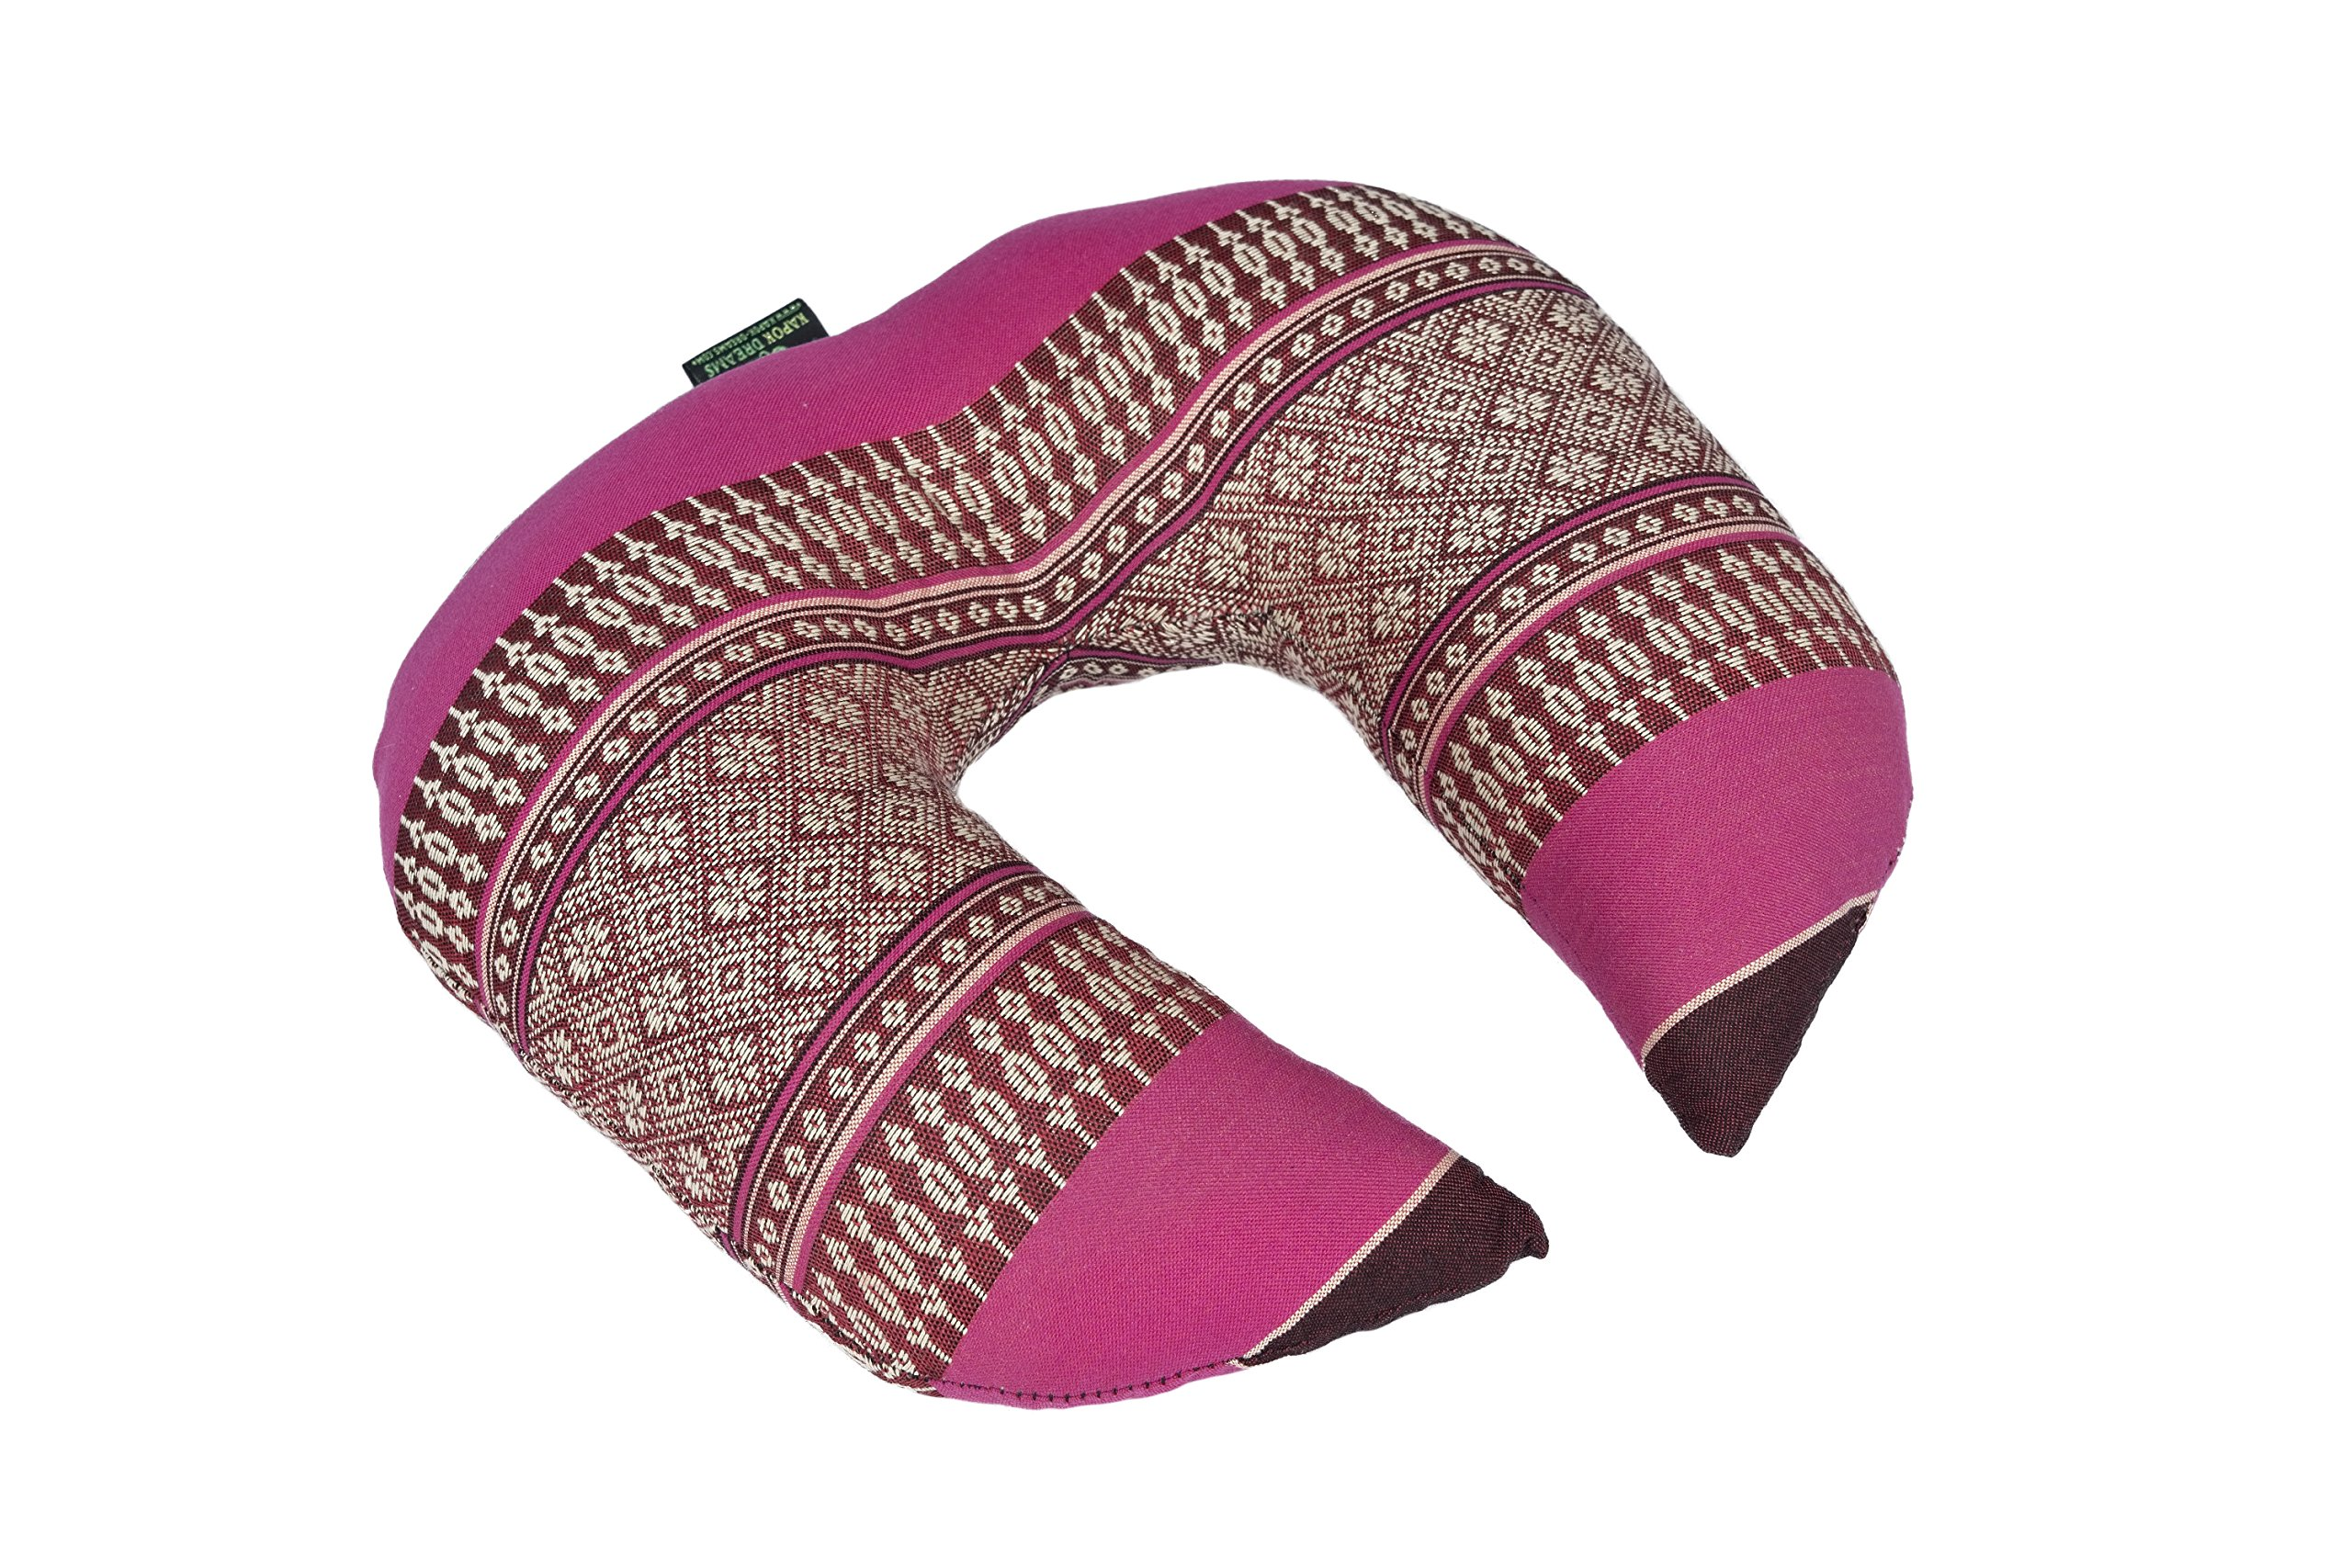 Kapok Dreams Face Cradle Cushion, 12''x11''x4'', Firm Support Pillow 100% Kapok Filled Head Rest (Burgundy Red & Pink) Thai Design.Neck Cushion by Kapok Dreams